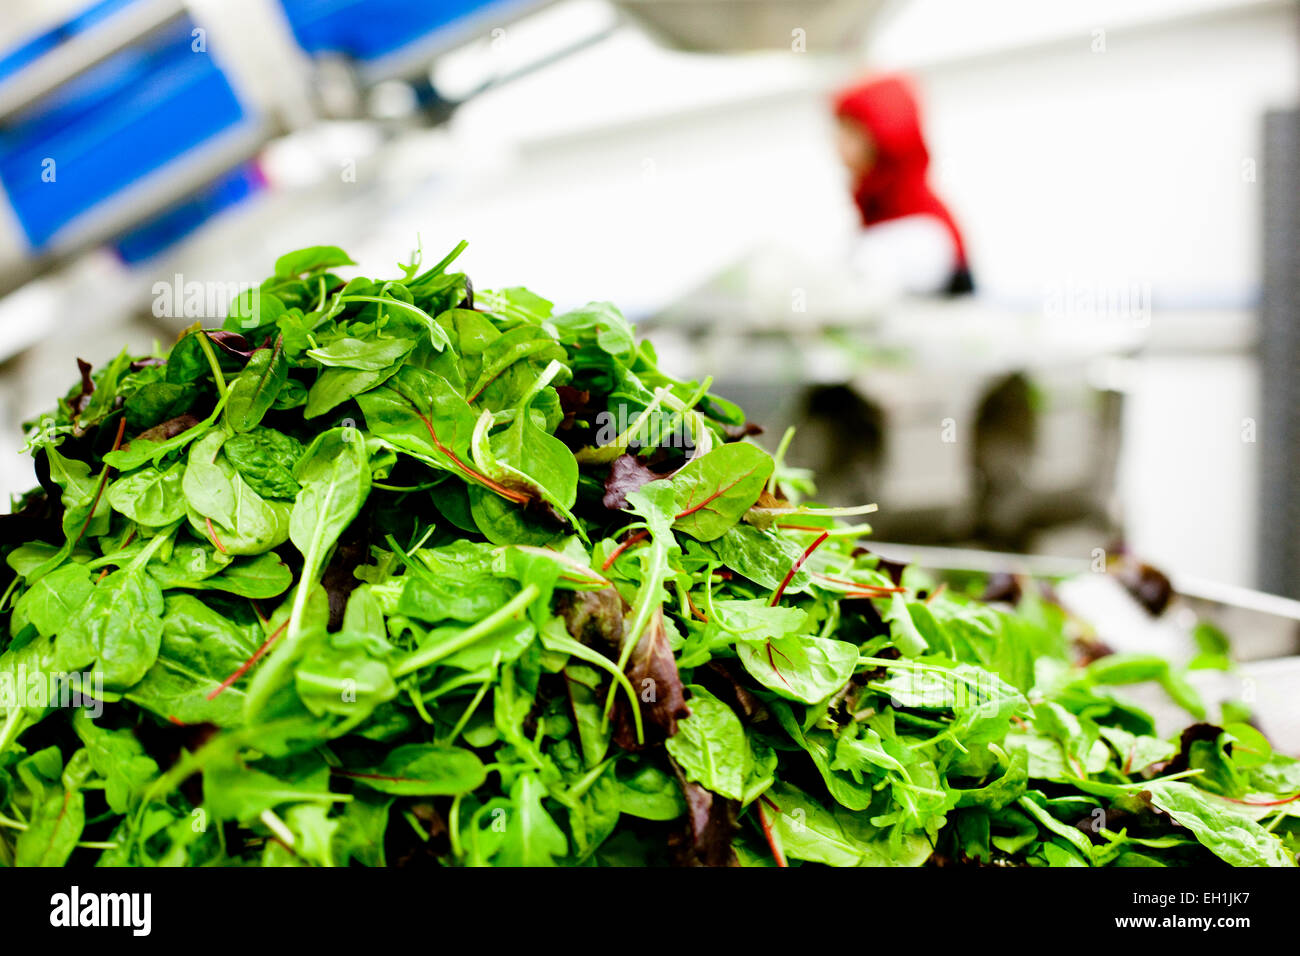 Stack of leafy vegetables in factory - Stock Image